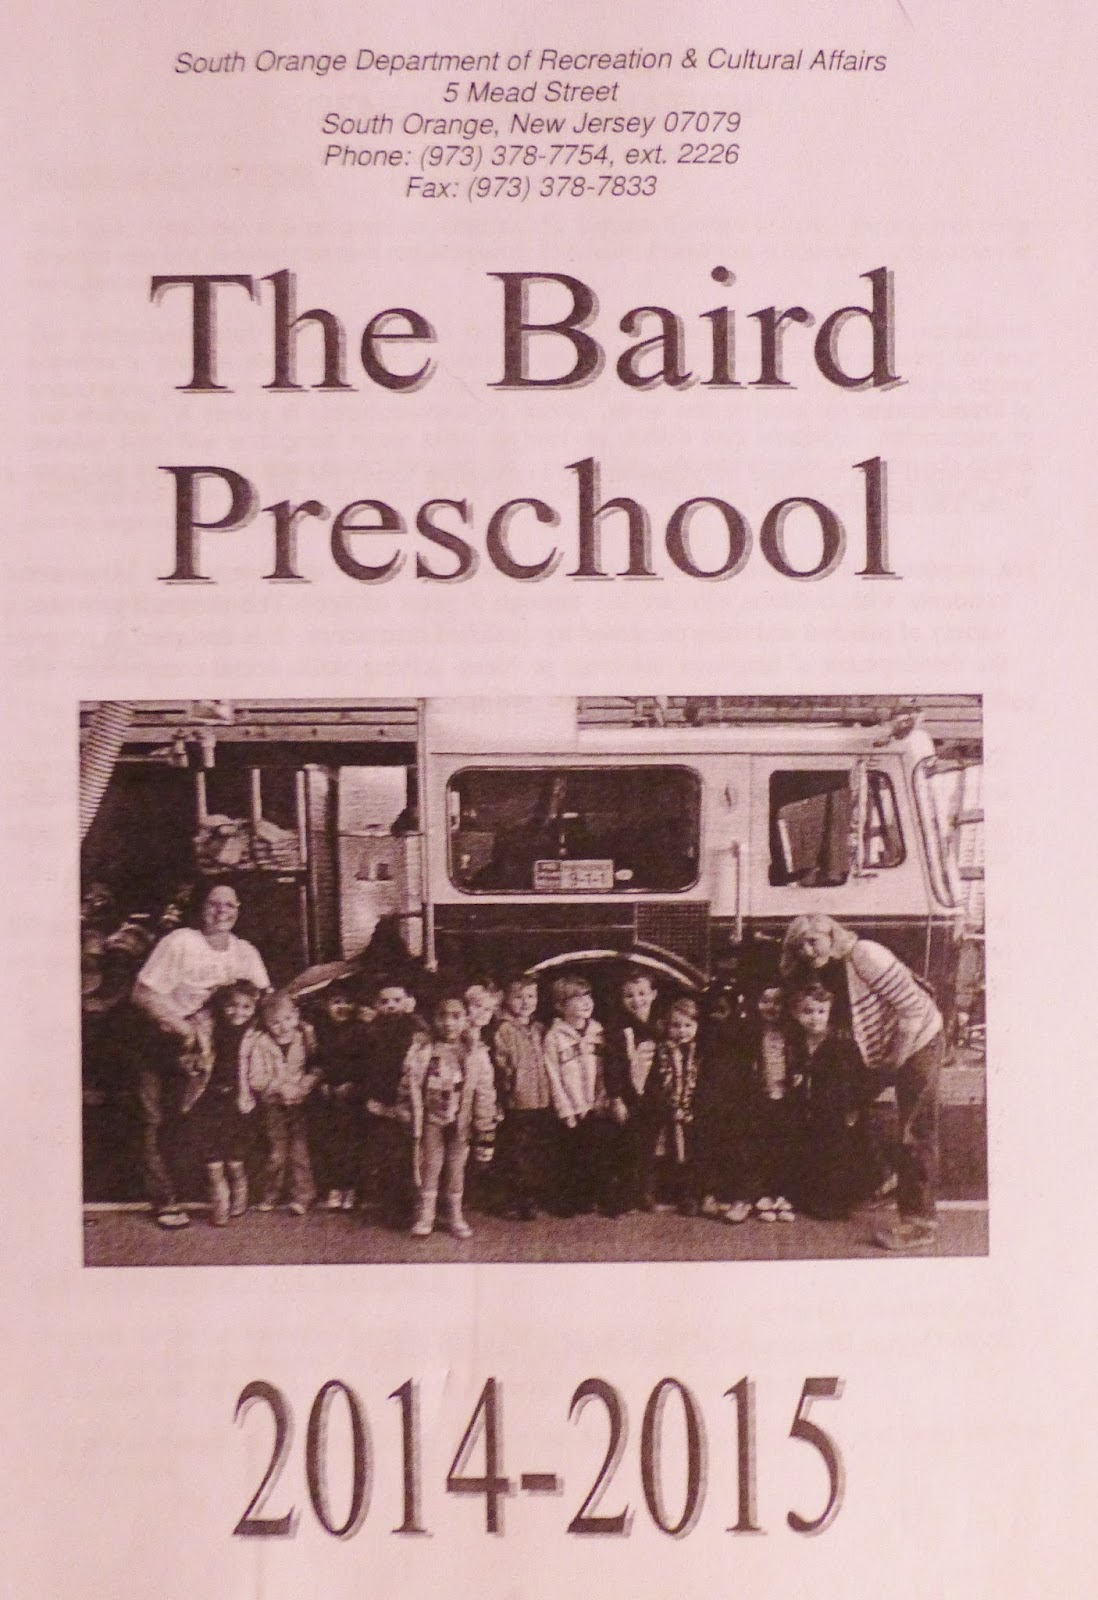 Blog: A Guide to Preschool for Maplewood & South Orange